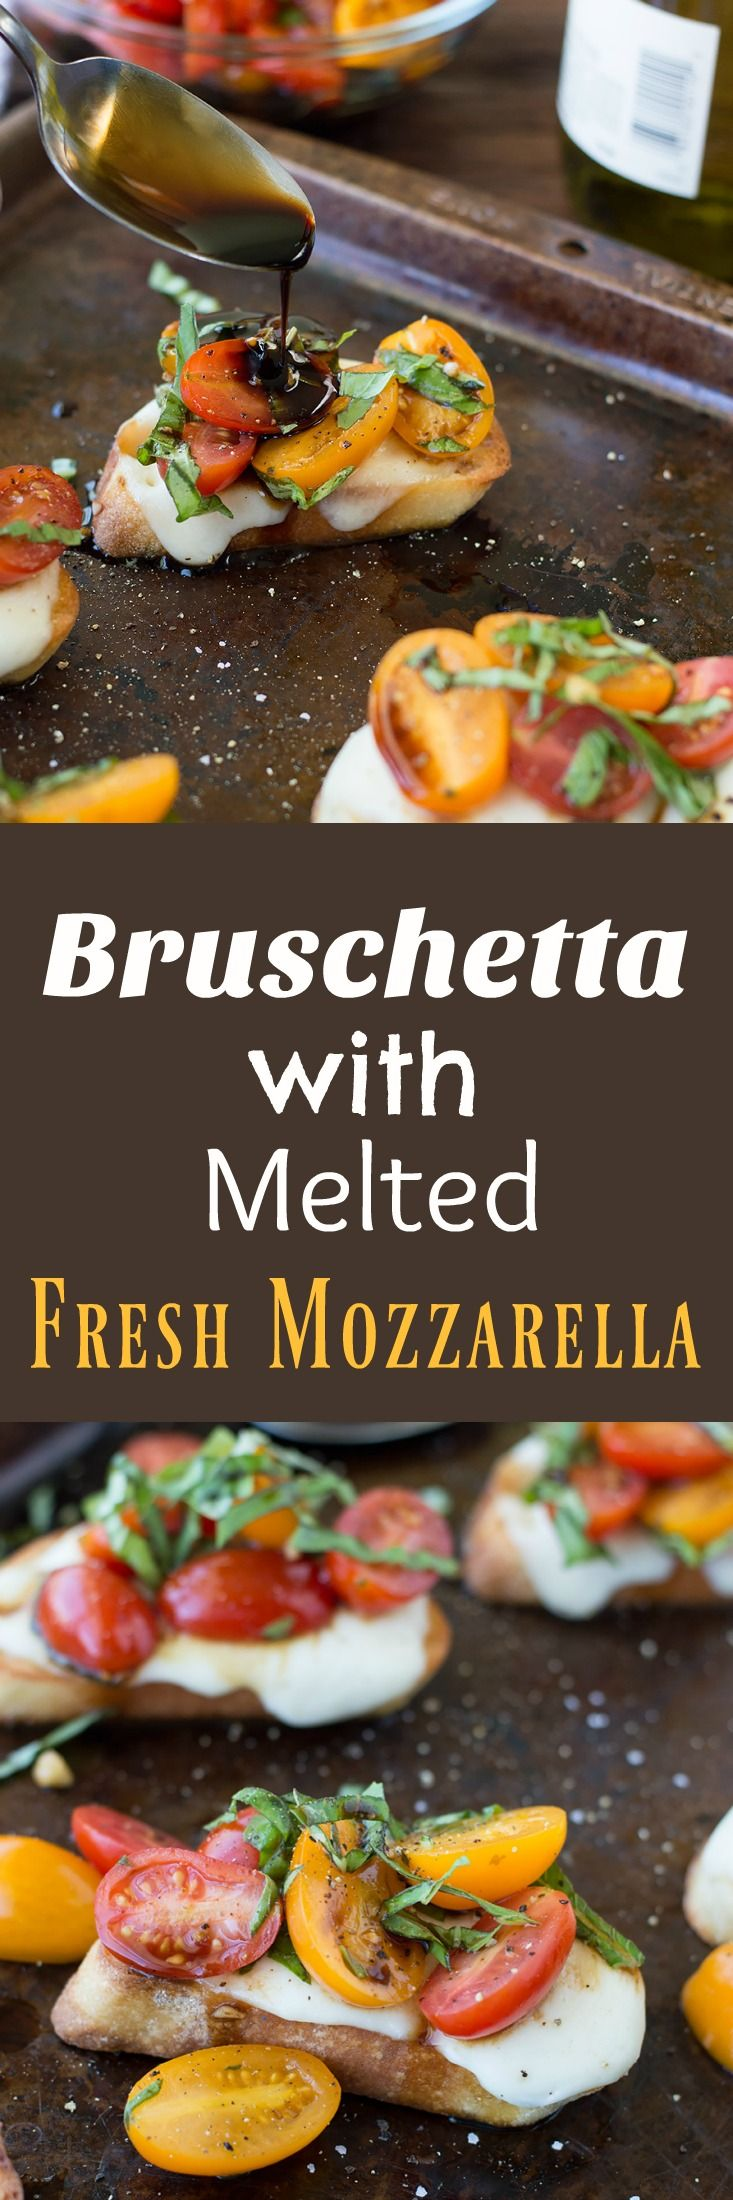 This Bruschetta with Cheese is easy to make with melted fresh mozzarella and french baguettes toasted to golden brown perfection.